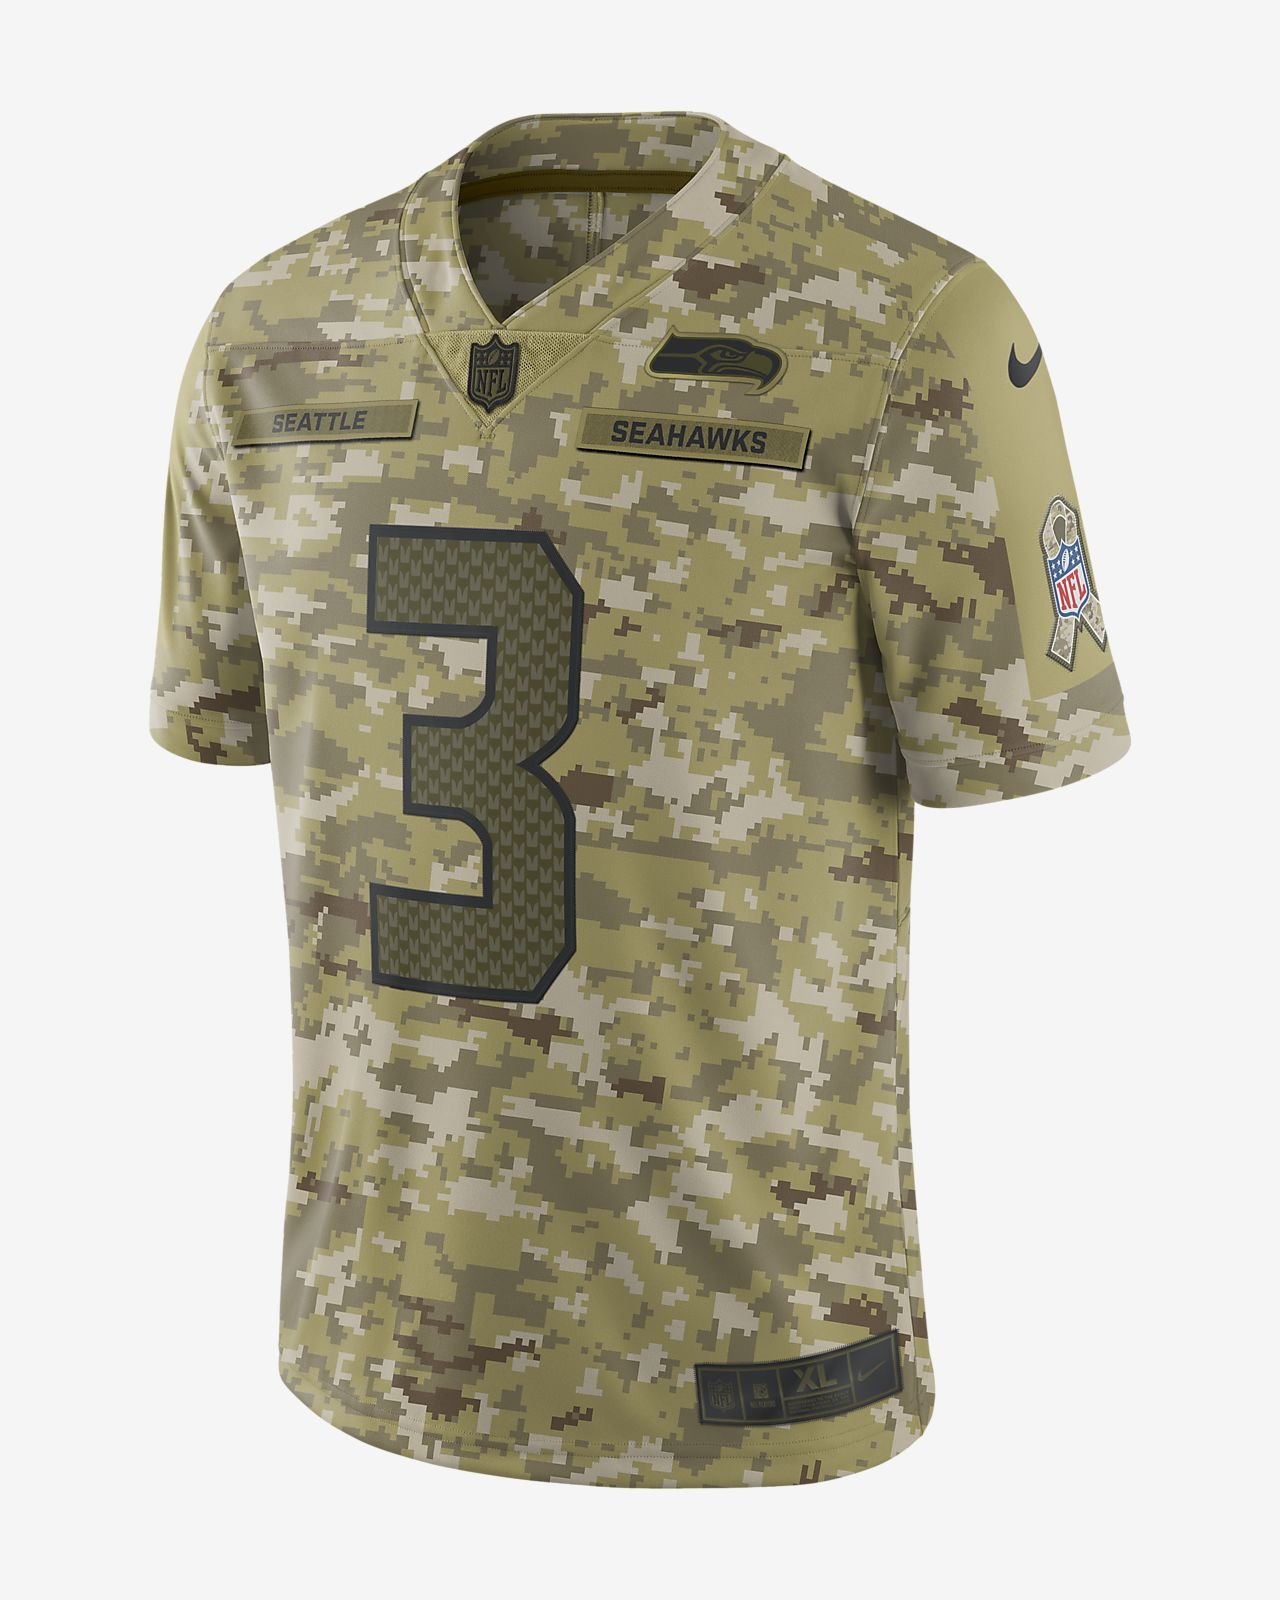 28f3cdf03 NFL Seattle Seahawks Salute to Service Limited Jersey (Russell Wilson)